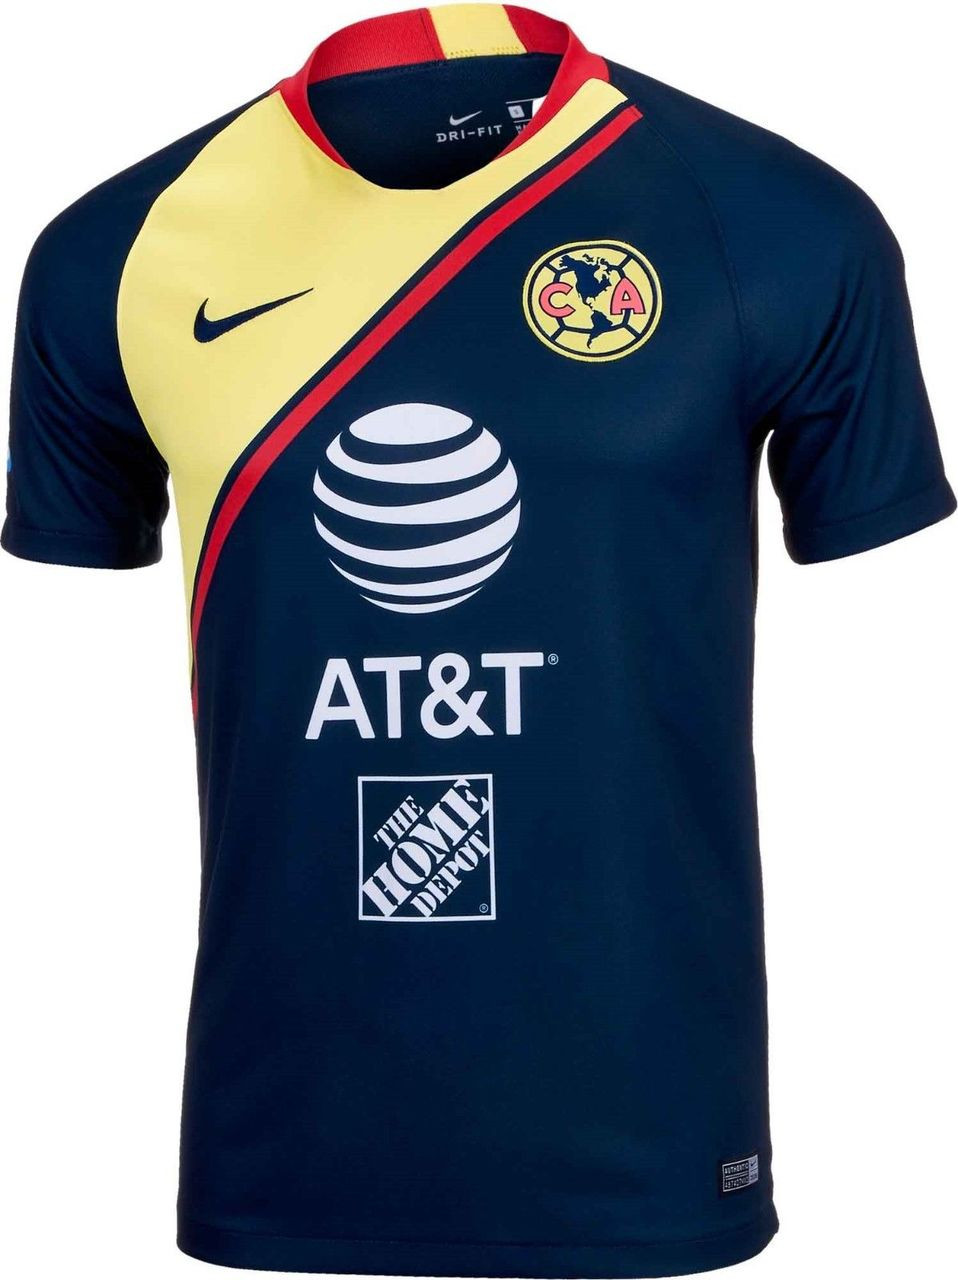 new arrivals a0ed3 23719 NIKE CLUB AMERICA 2019 AWAY JERSEY